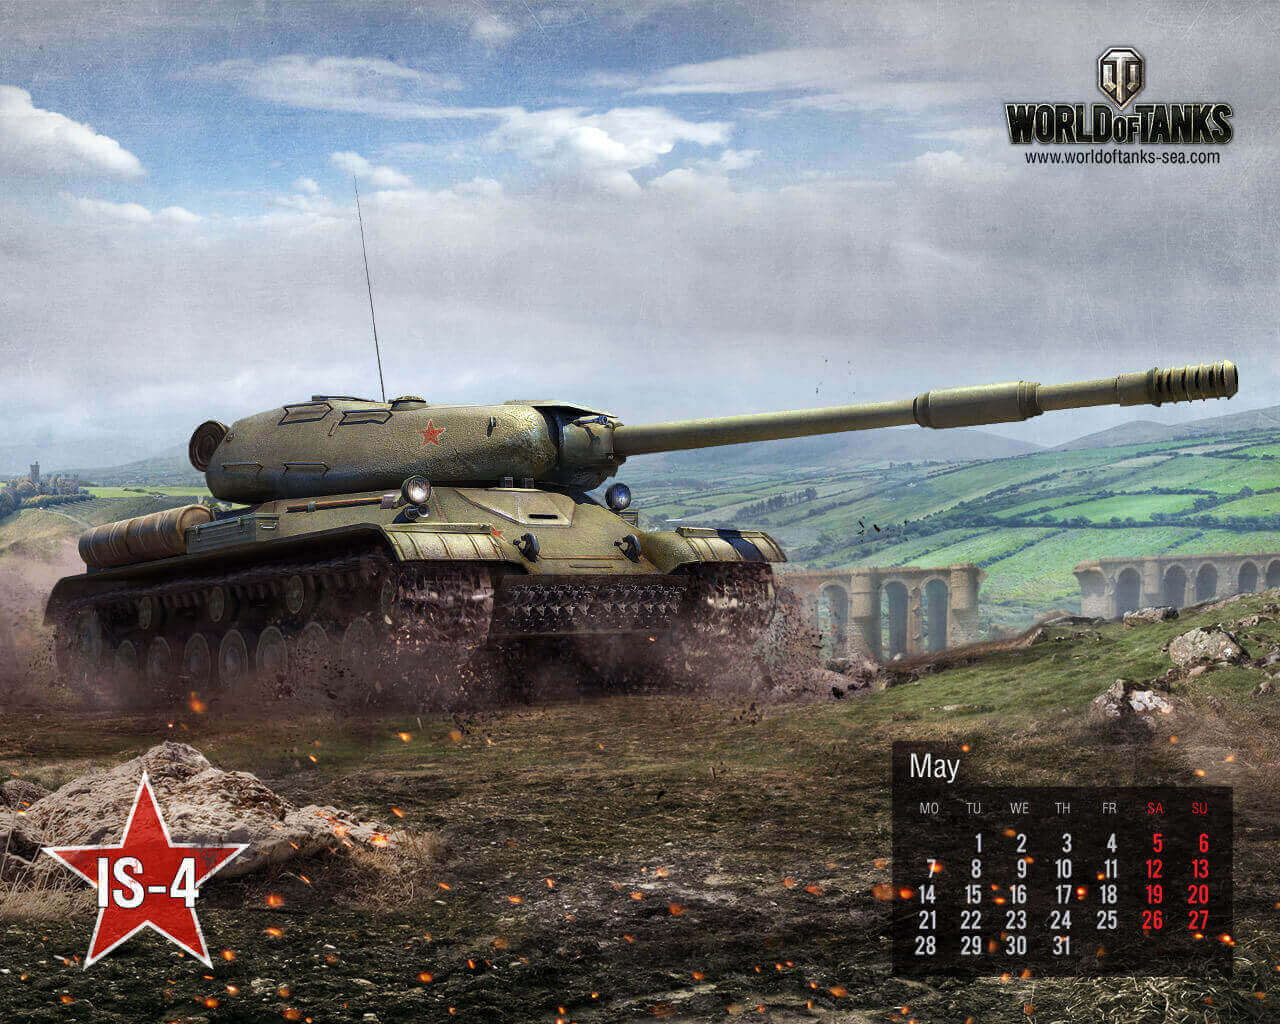 May Calendar: IS-4